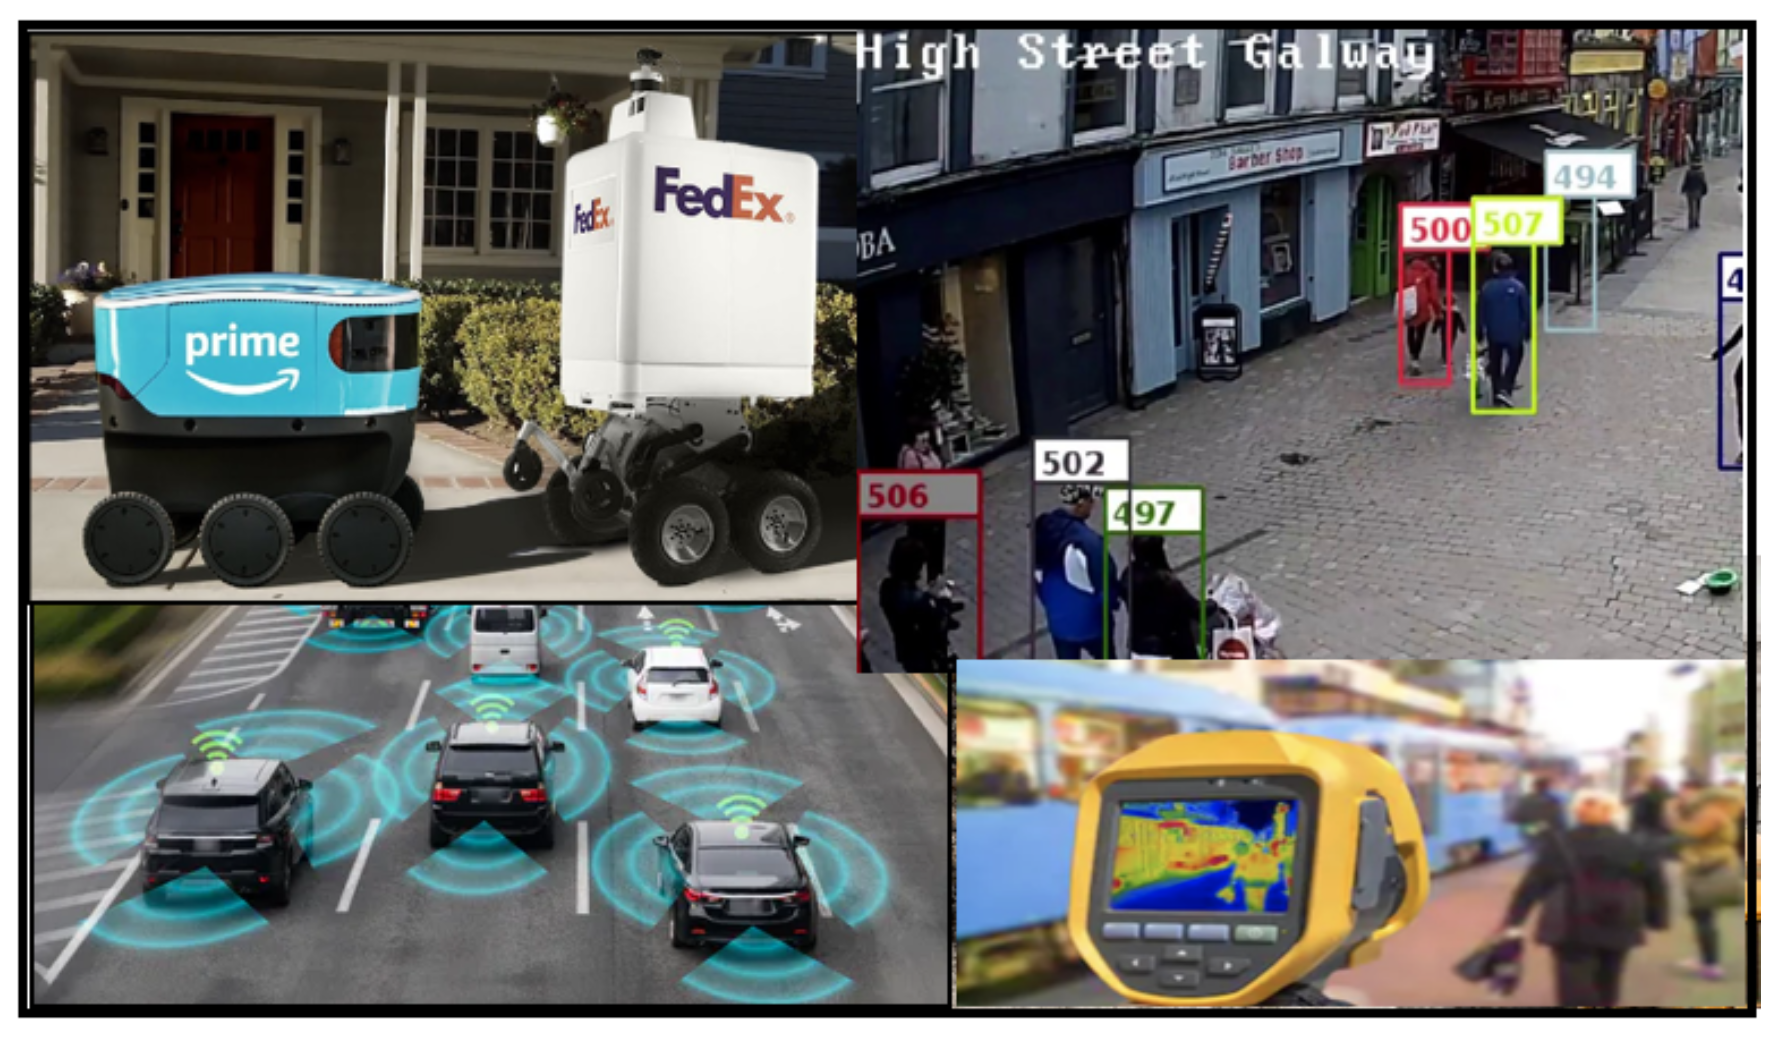 The Augmented LiDAR Box can be used in many applications, from Mobile Robots to Infrastructure-based solutions.